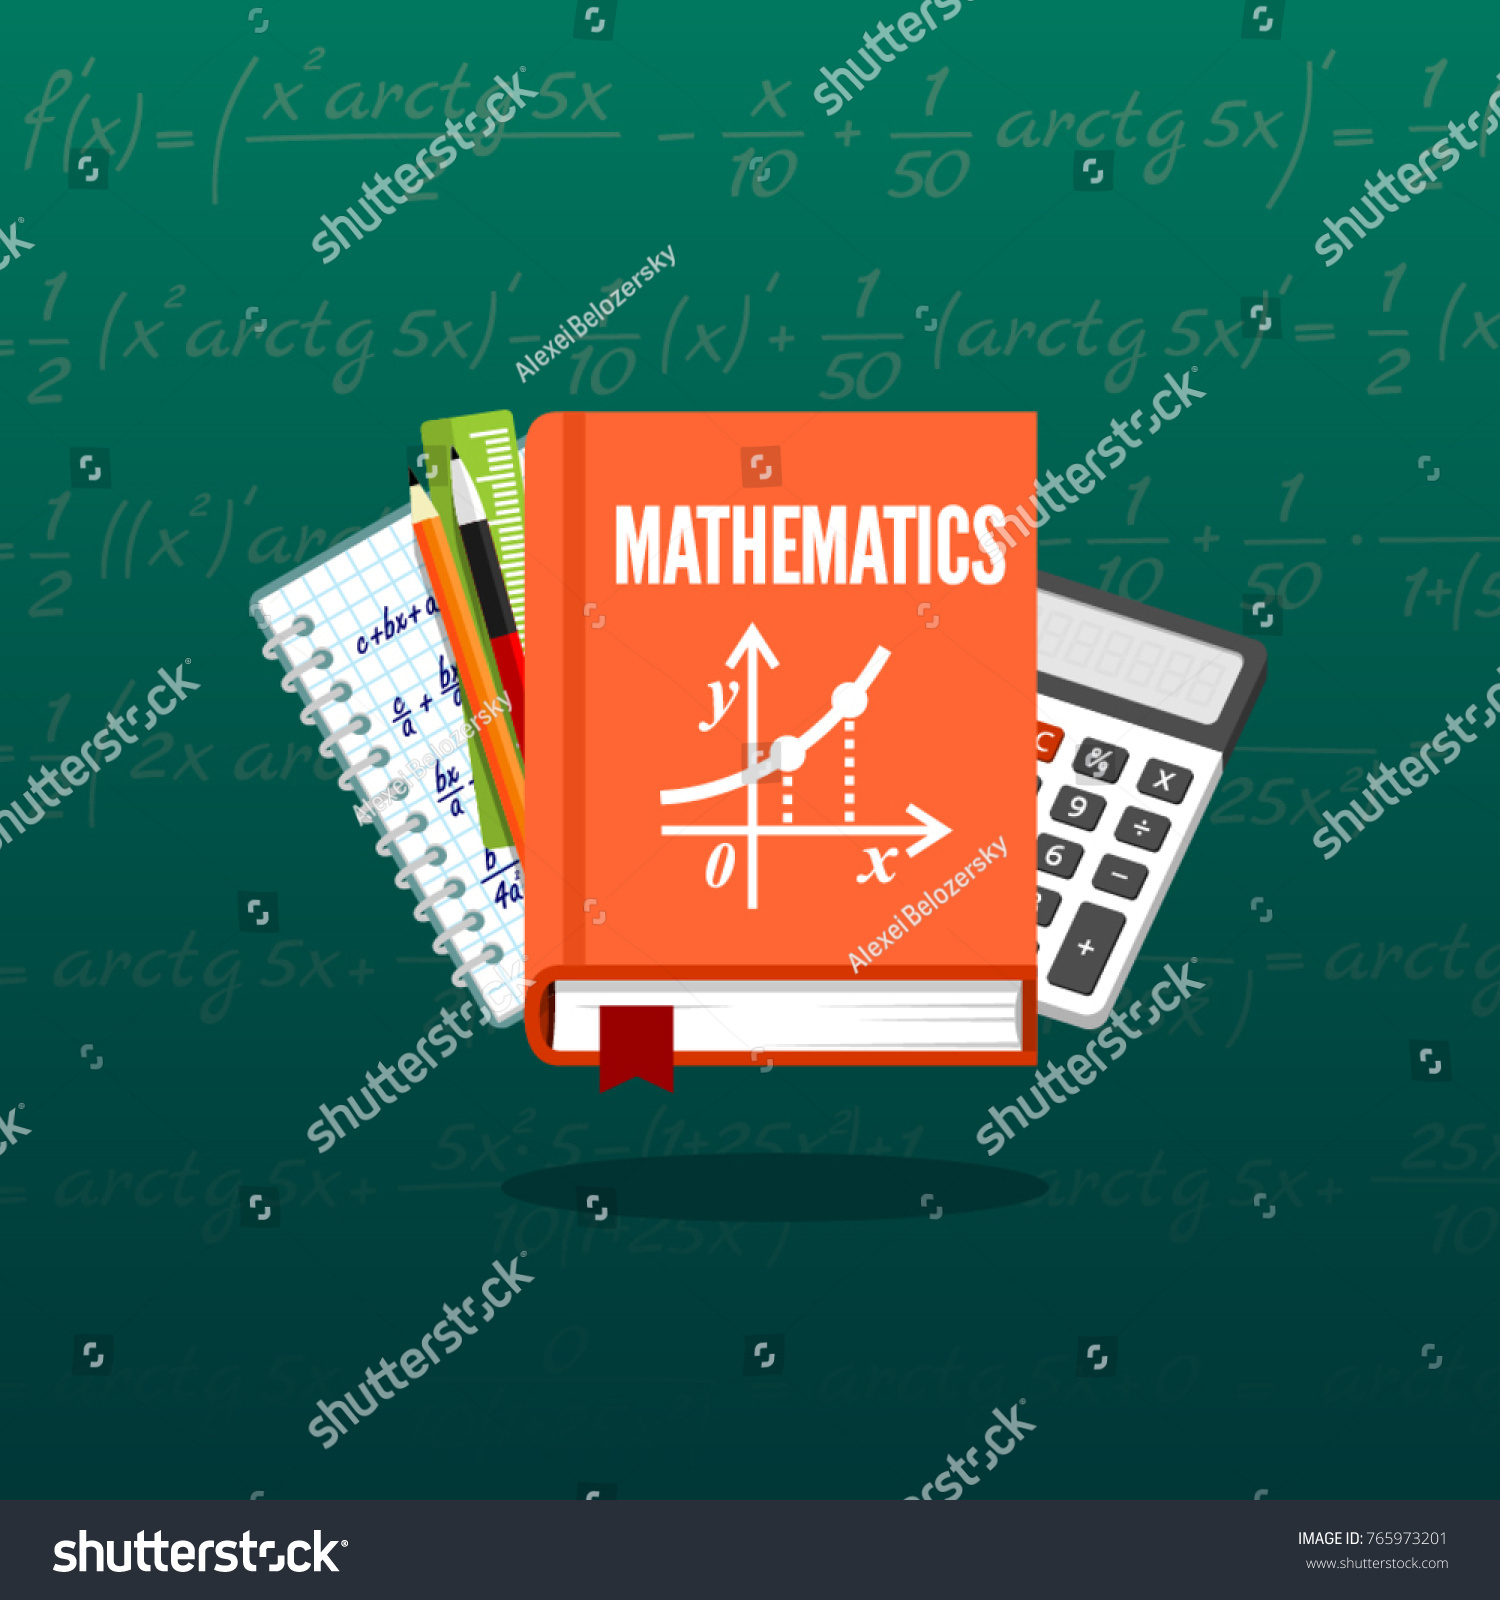 Math Science Banner Illustration Concepts For School Lesson Items Education And Knowledge Ideas